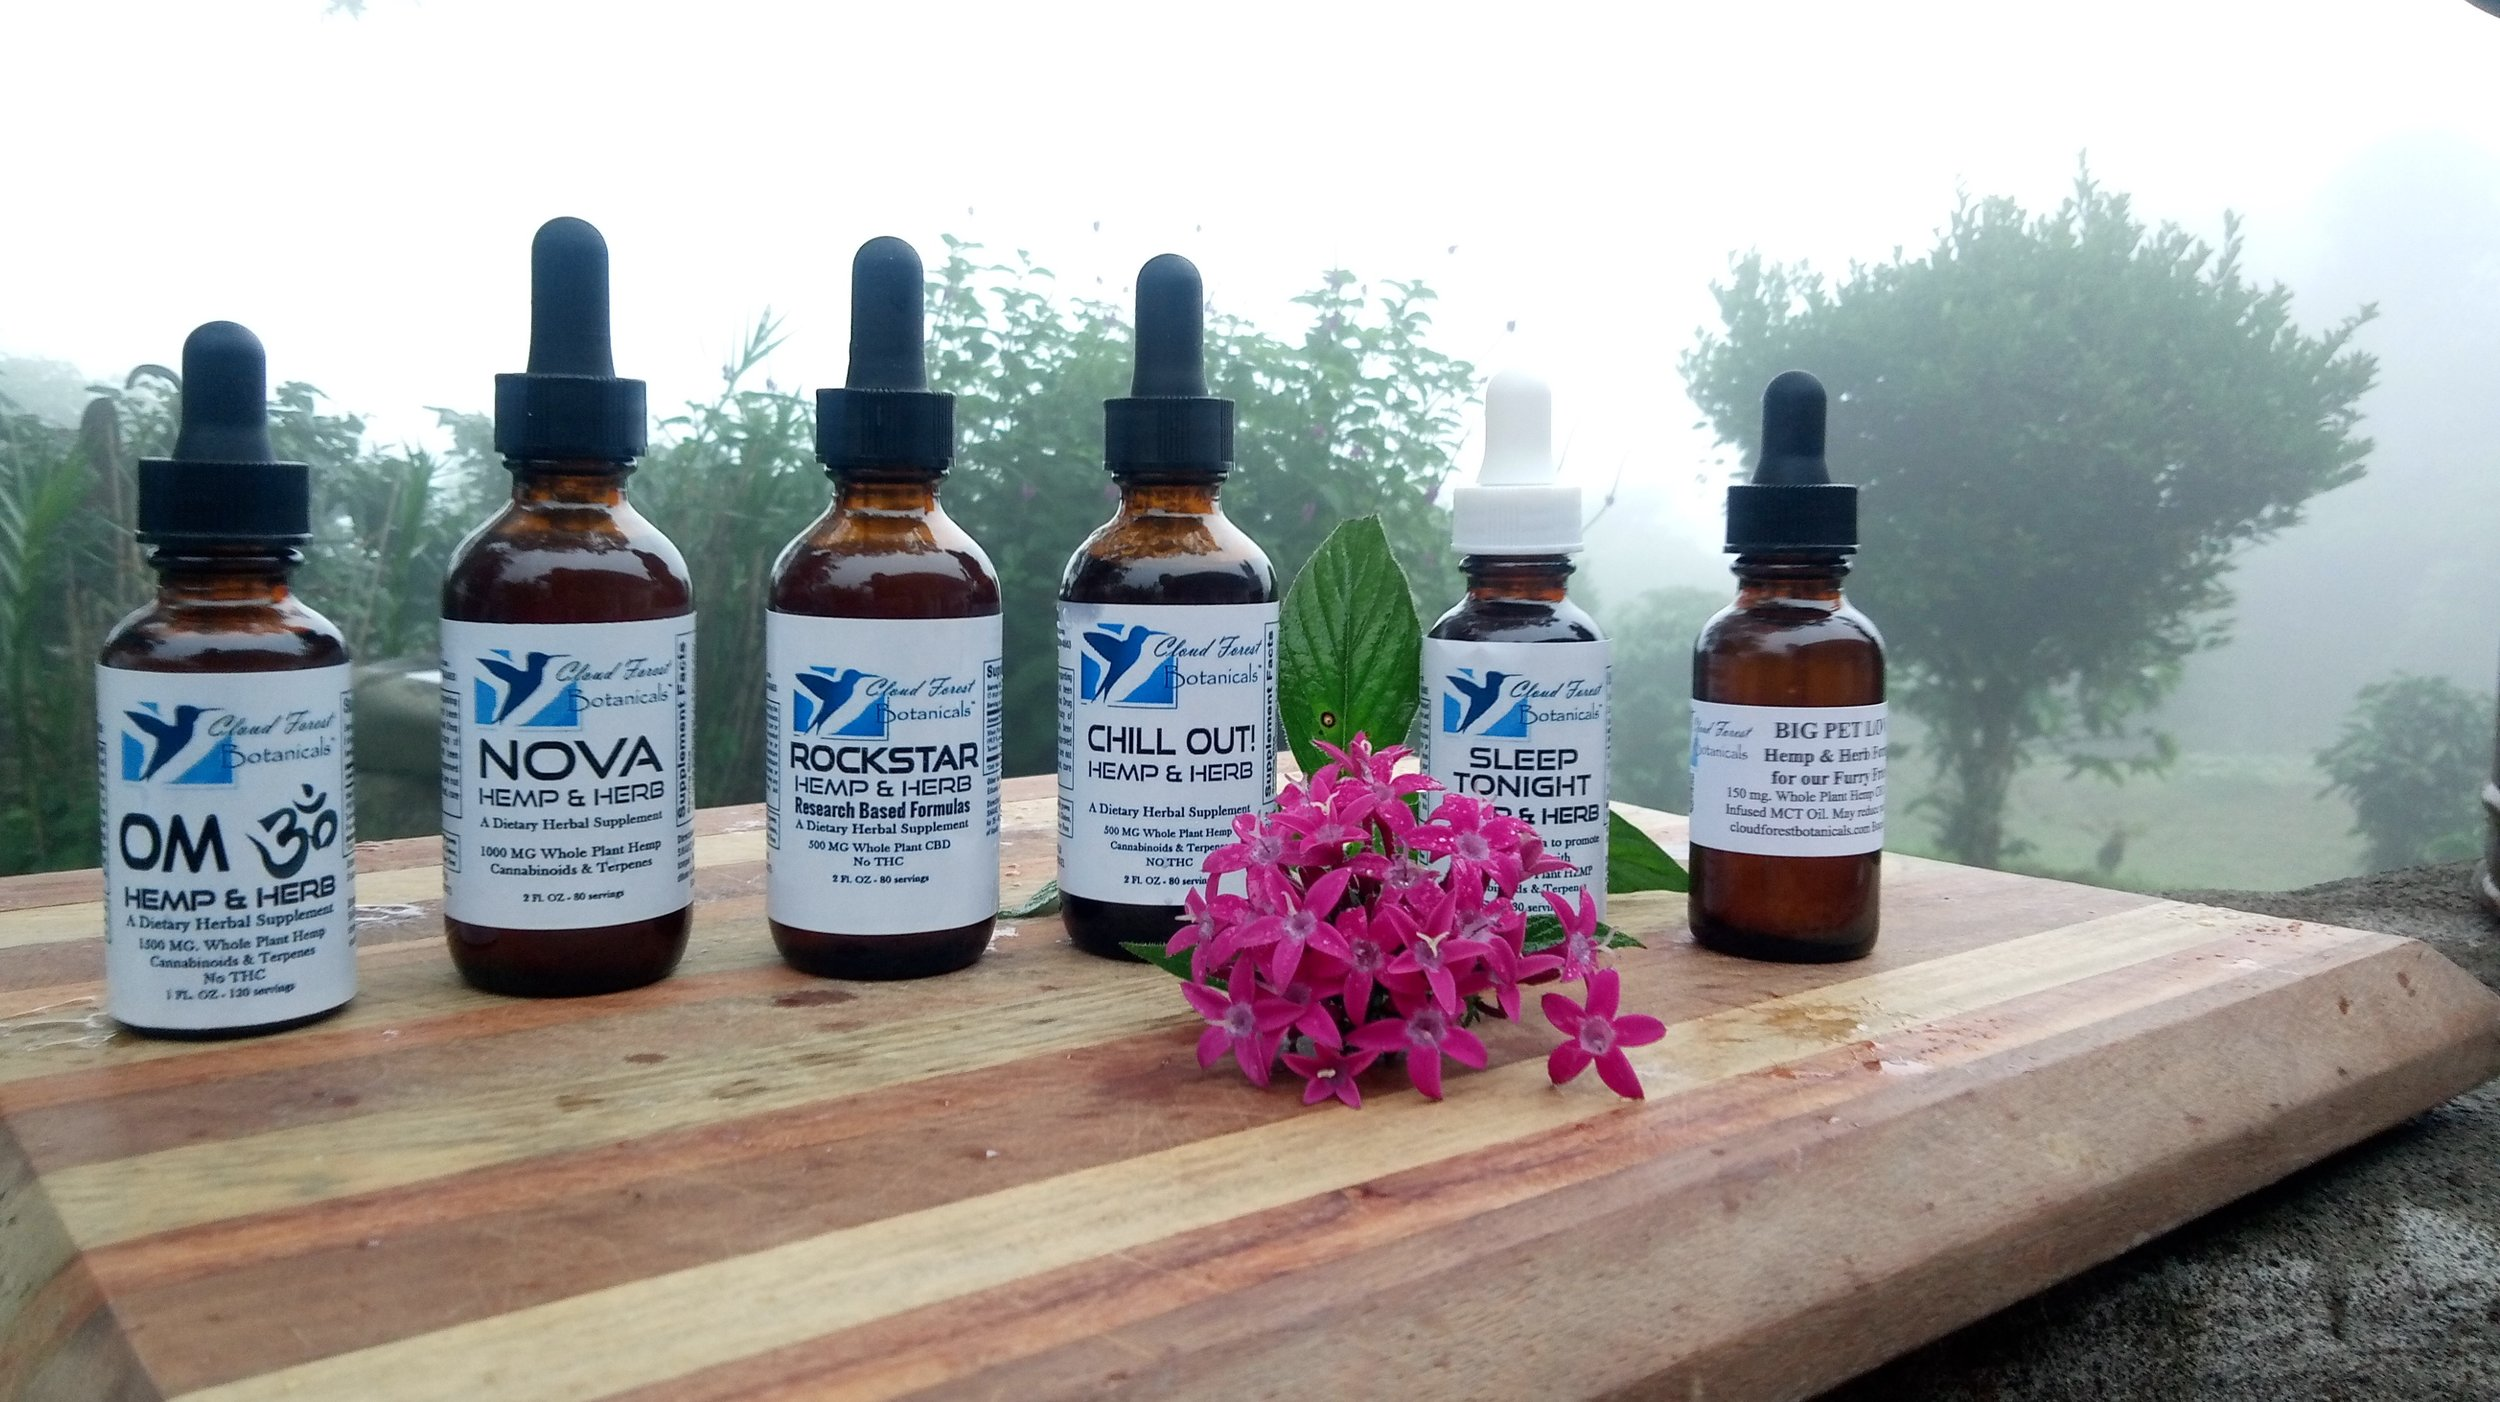 Hemp & Herbs   — from 500 to 1500 mg. of pure CBD with terpenes in organic botanical tinctures